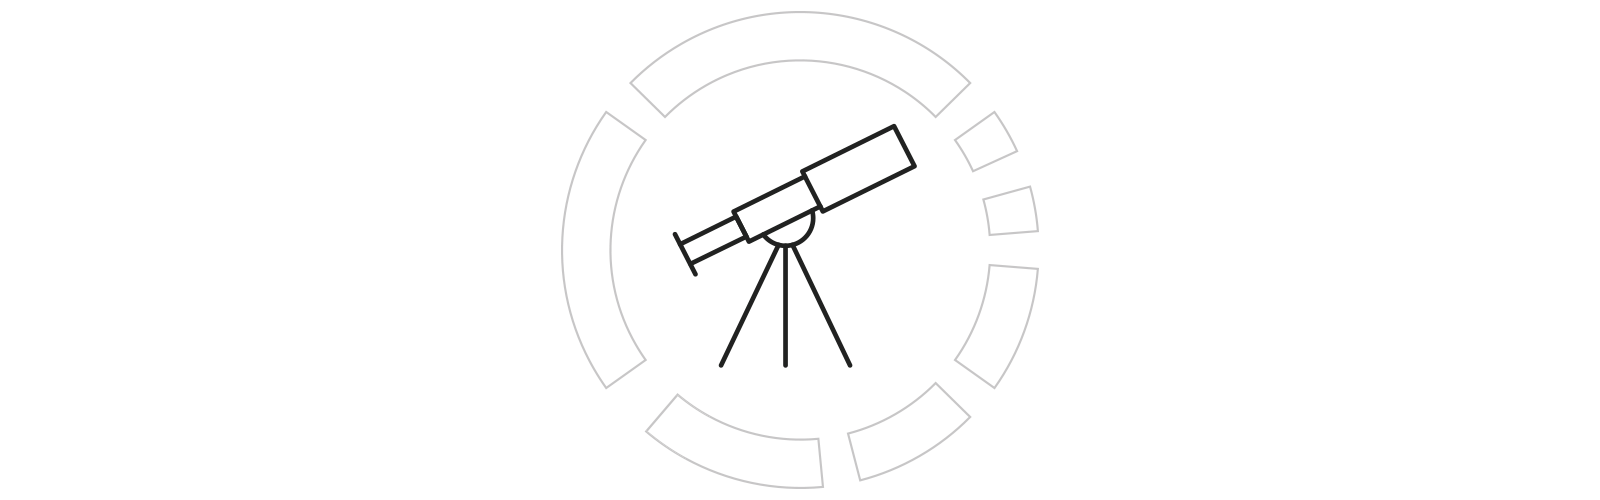 telescope-tech.png